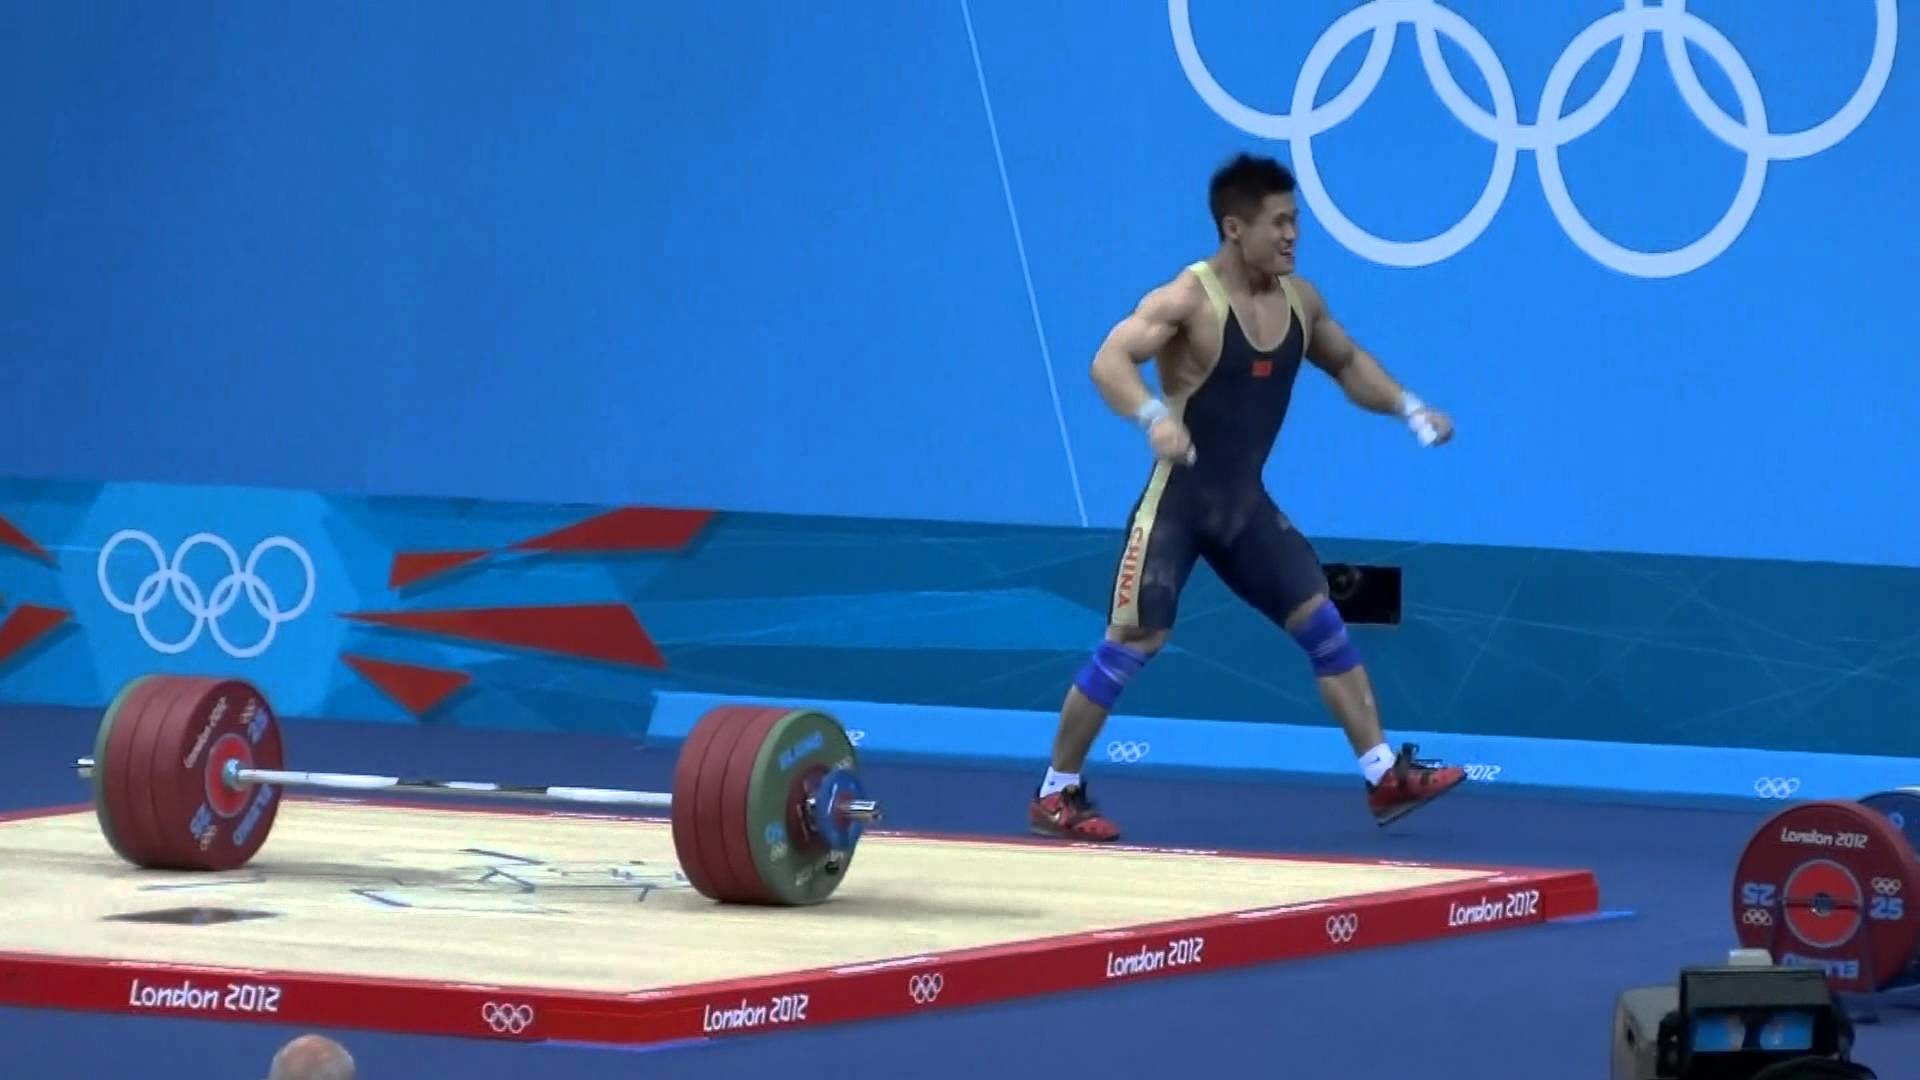 1920x1080 Olympic Weightlifting World Record 2012